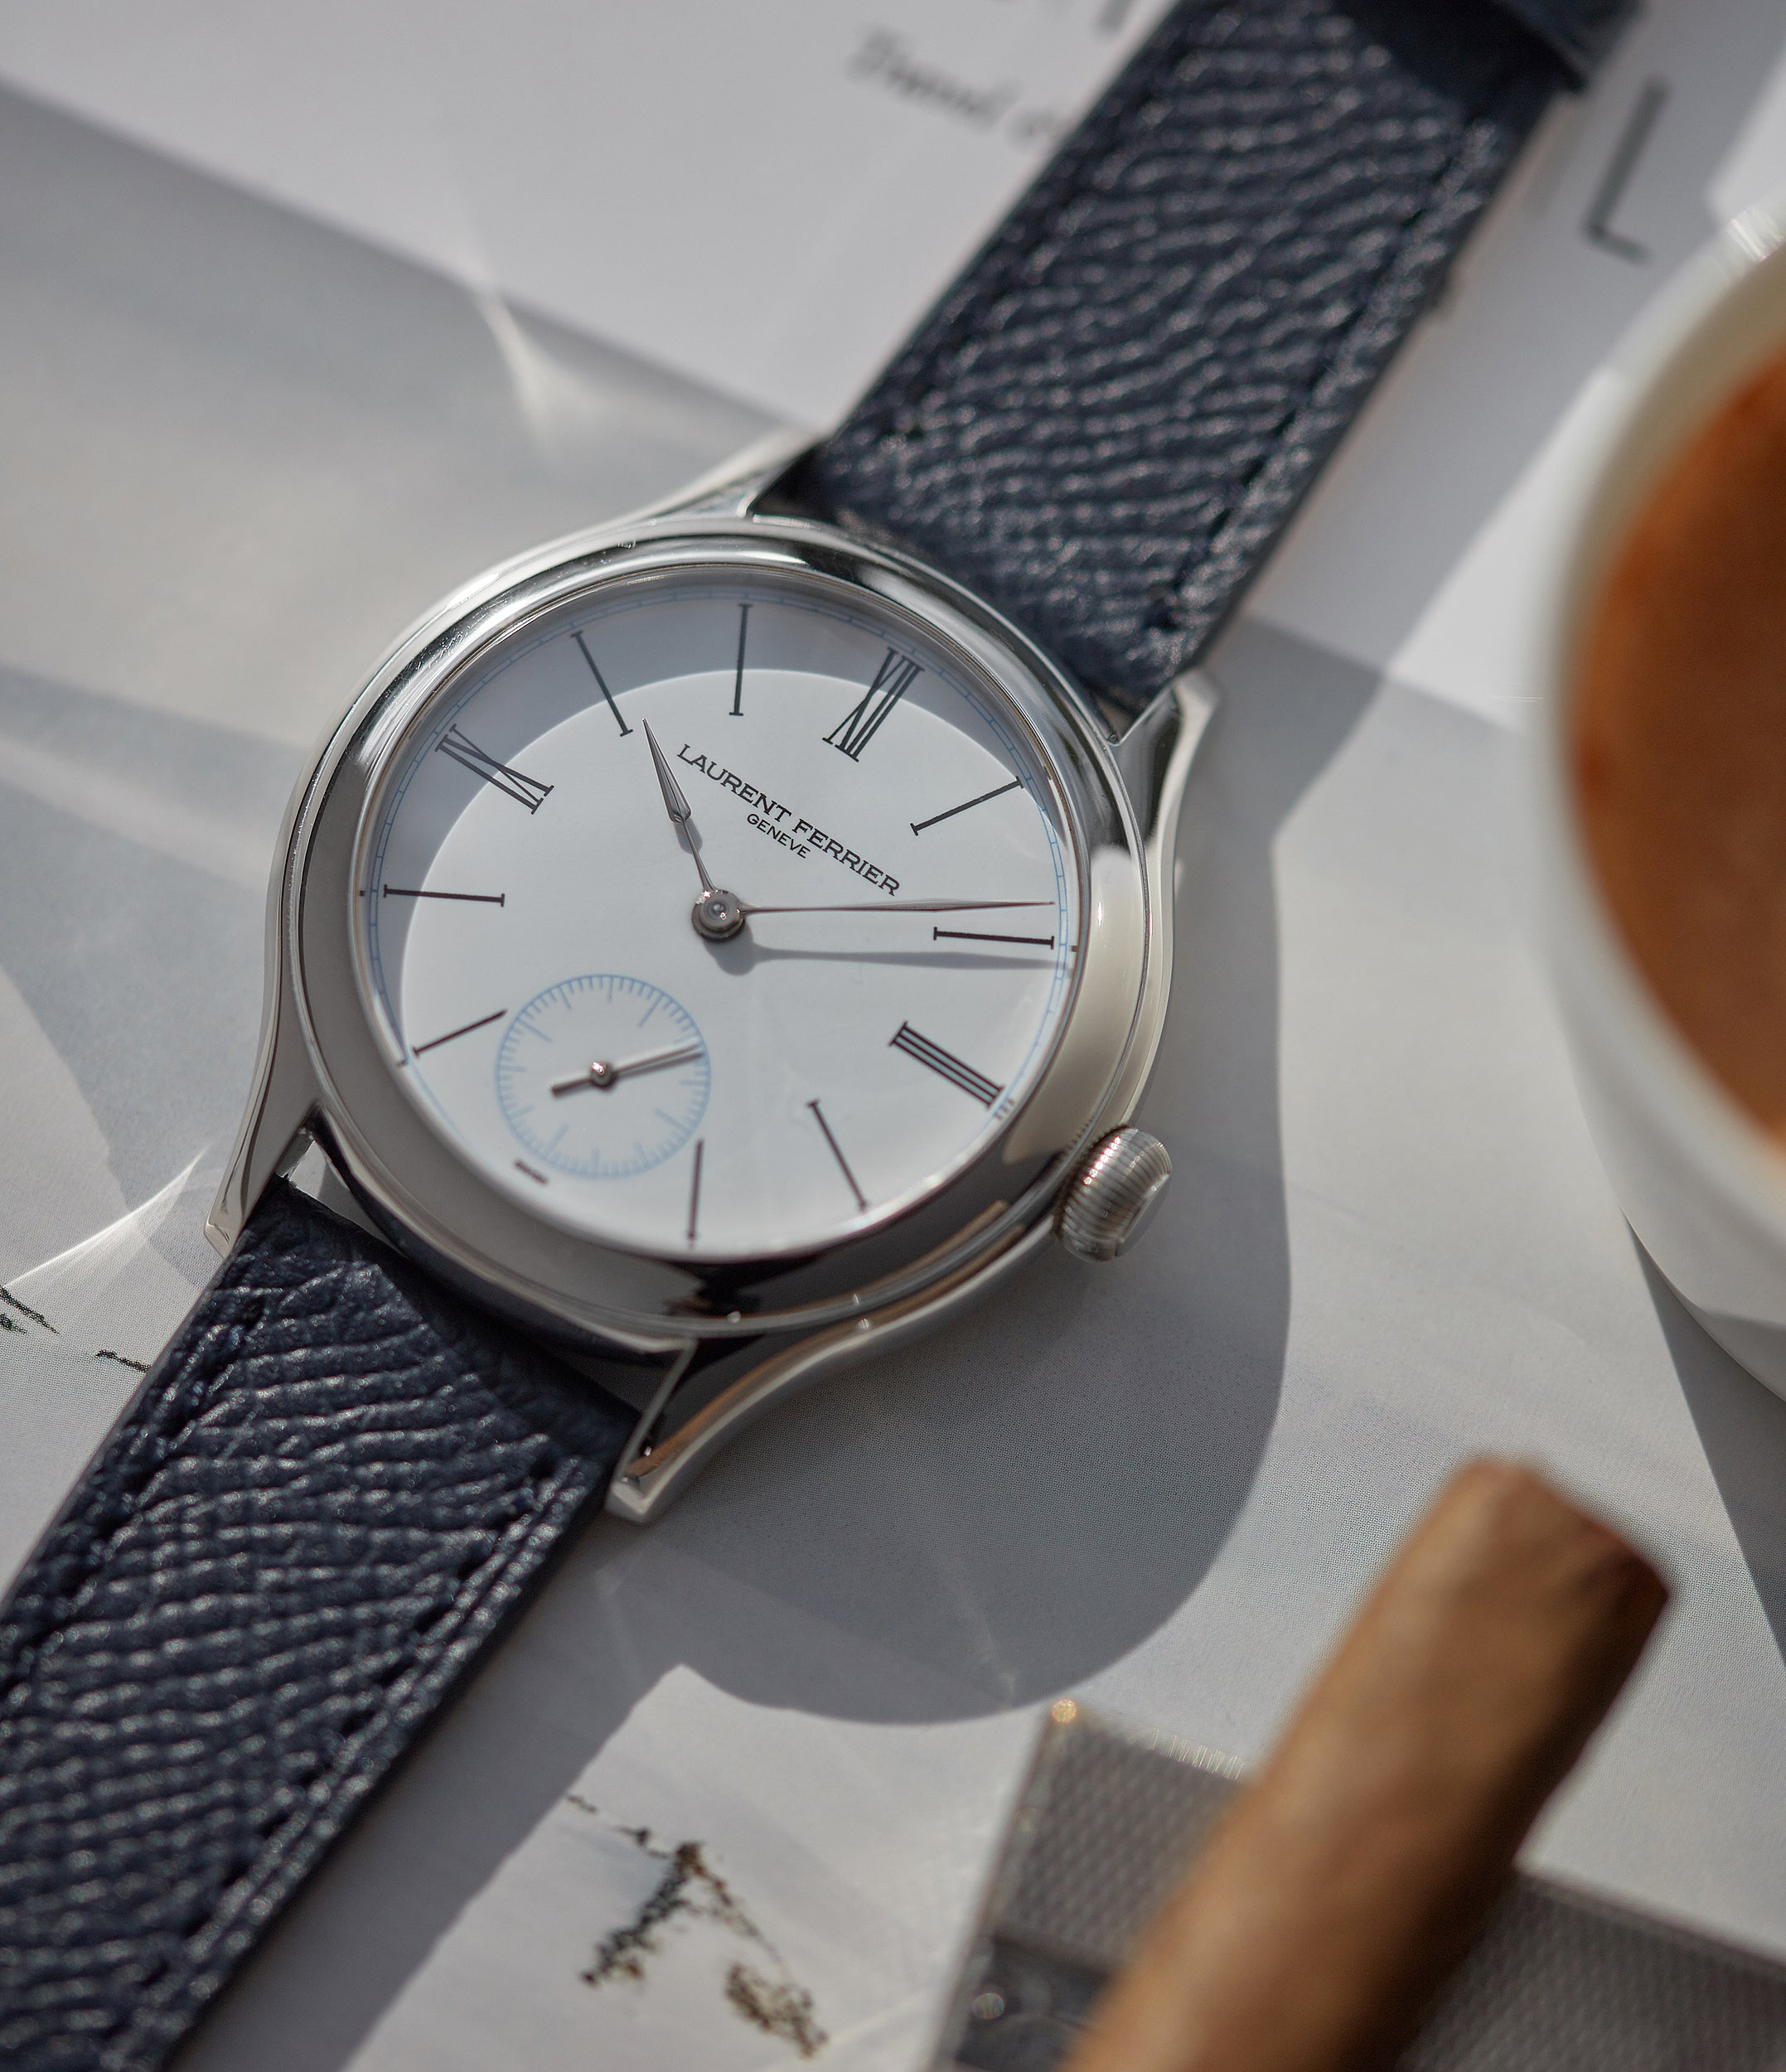 Limited Edition Laurent Ferrier Galet Micro-rotor platinum white enamel dial dress watch sale A Collected Man London UK specialist of independent watchmakers